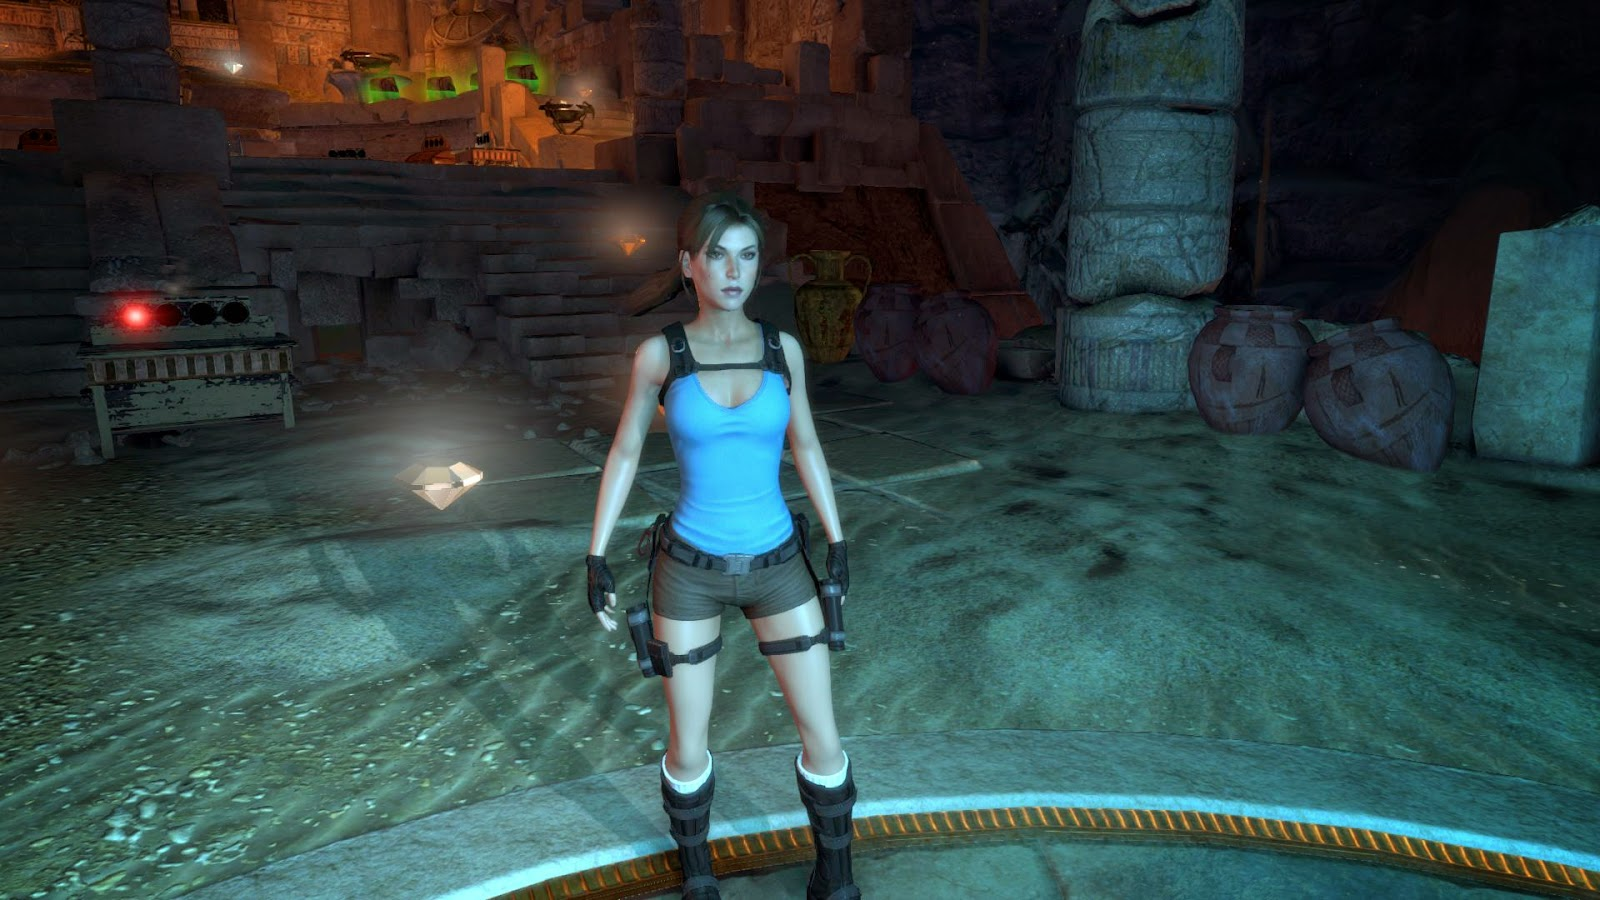 lara croft and the temple of osiris matchmaking Lara croft and the temple of osiris is the sequel to the critically acclaimed lara croft and the guardian of light this all-new adventure takes place in the temple of osiris, hidden deep in the deserts of egypt lara croft arrives at the temple, hoping to be the first inside, but rival treasure hunter carter bell has beaten her to the entrance.